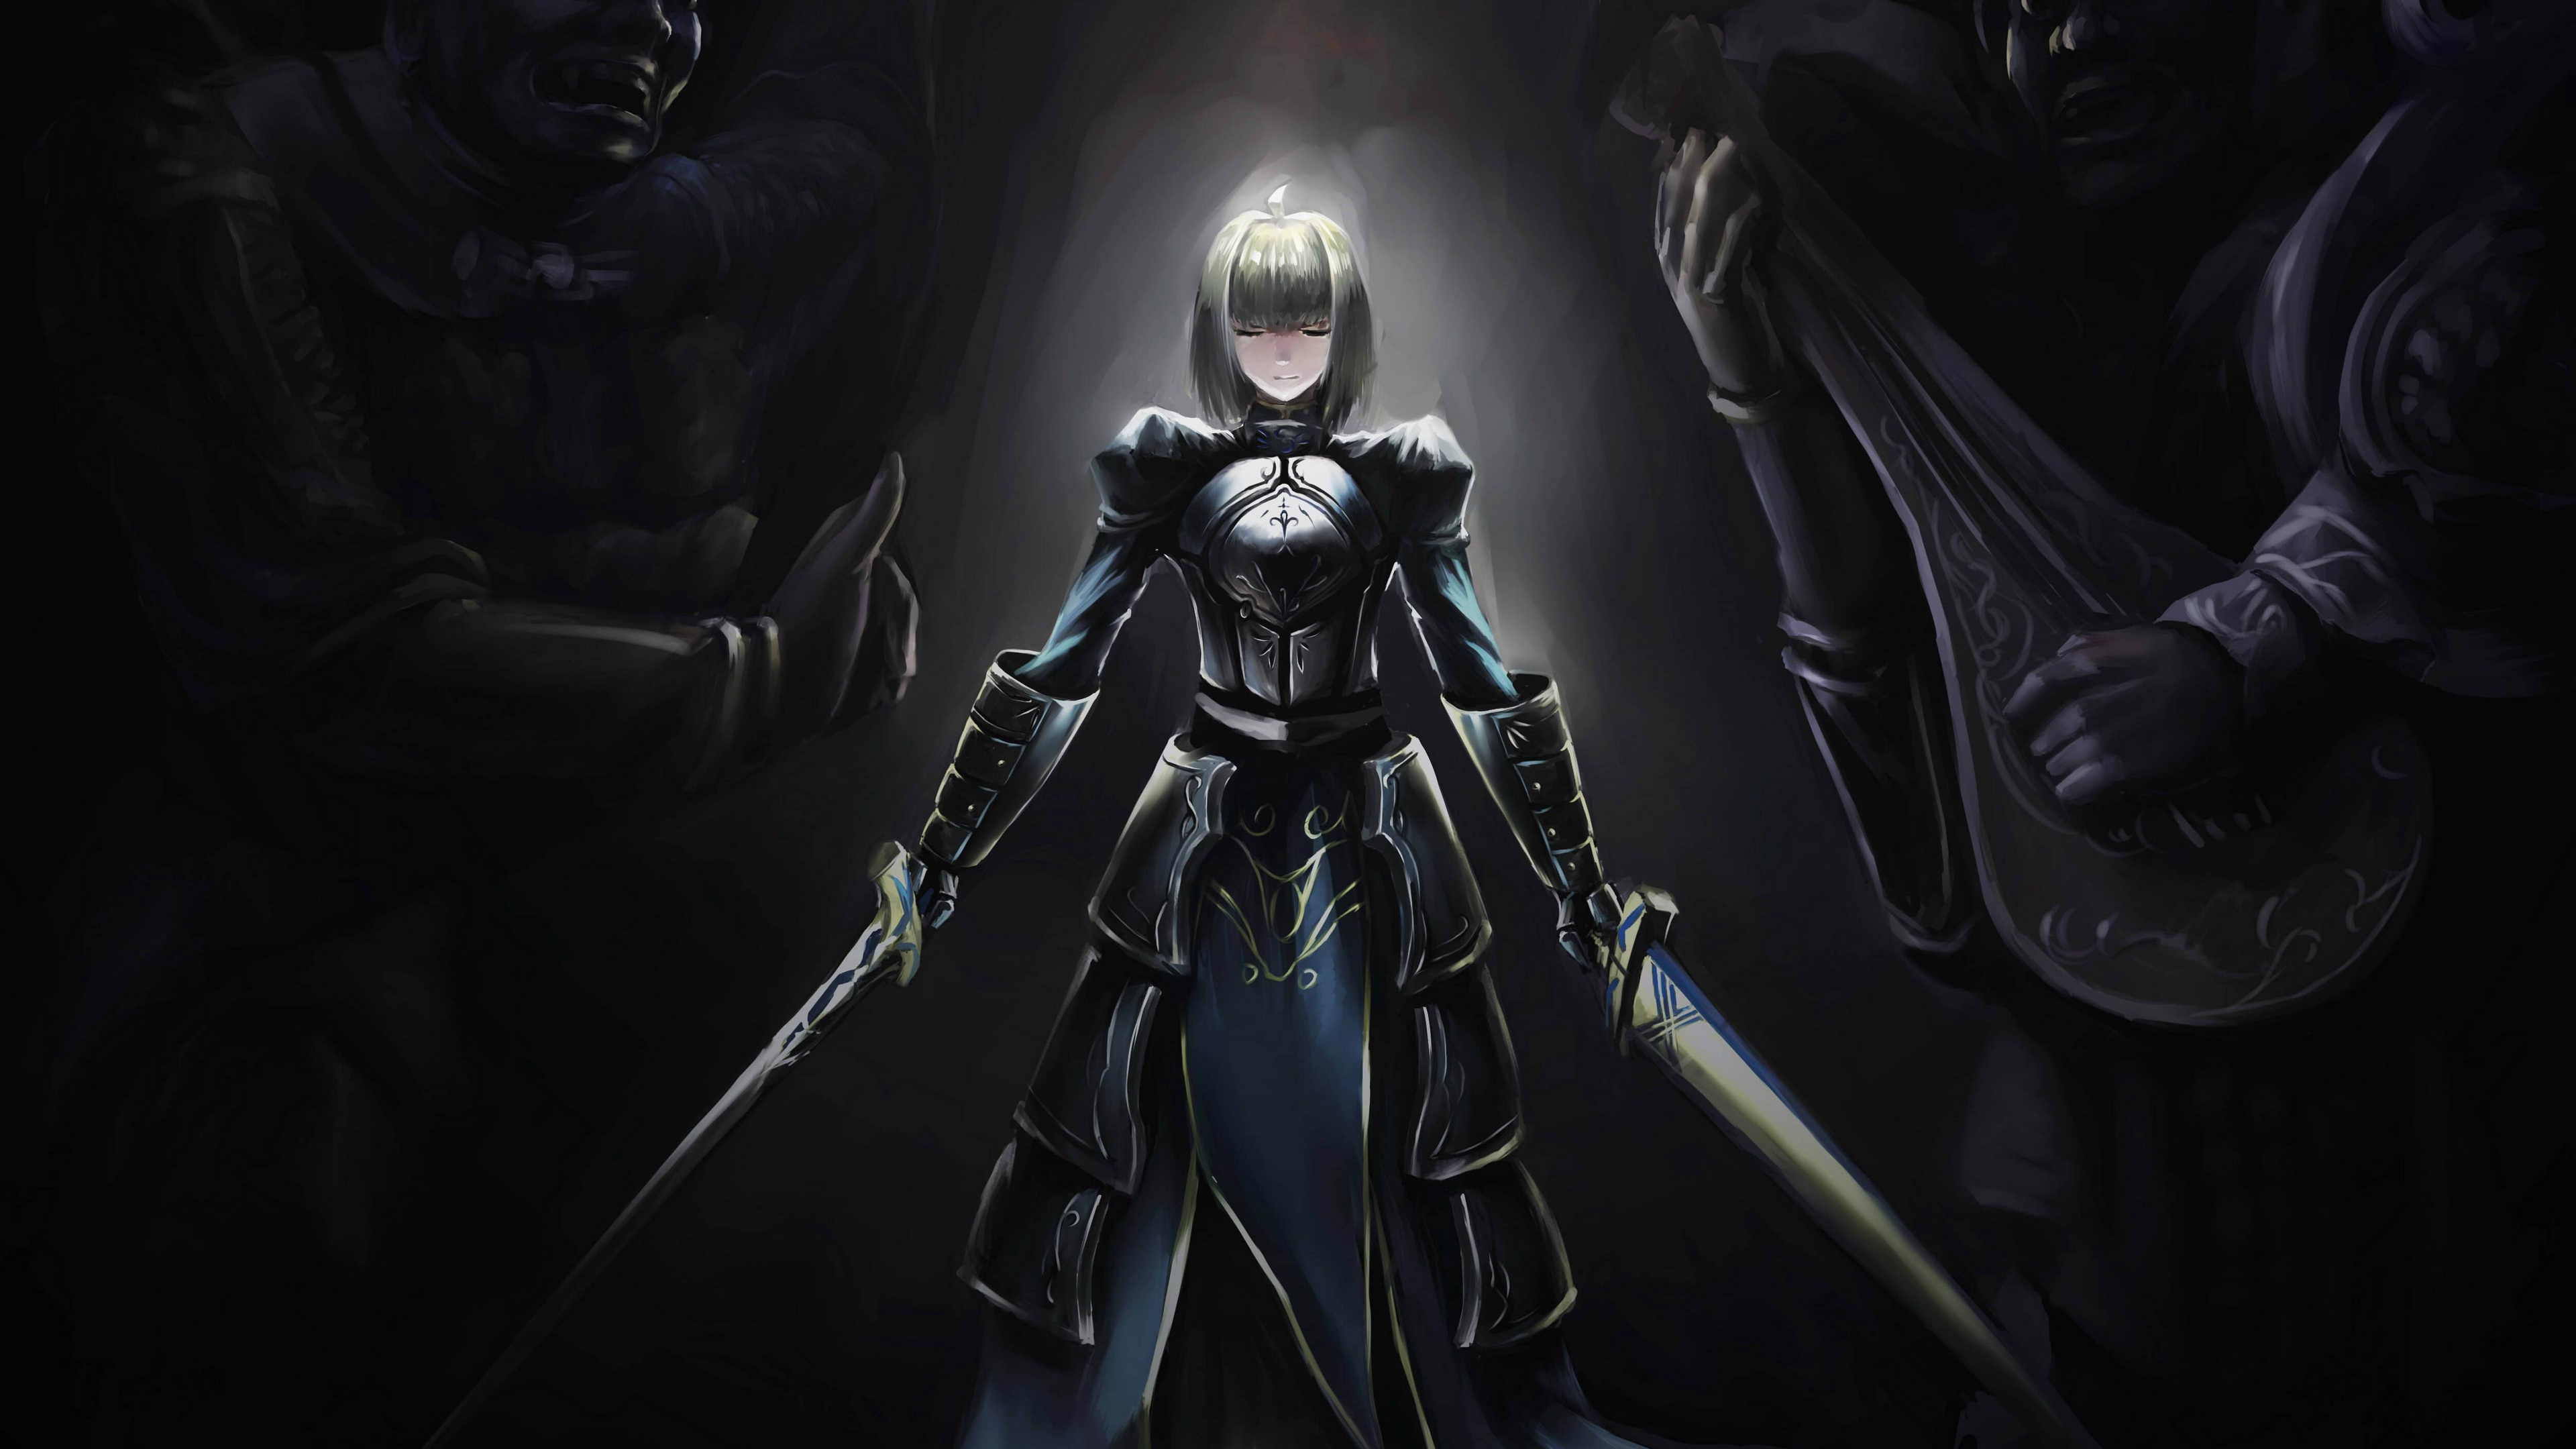 fate stay night saber girl art 4k 1541975828 - fate stay night, saber, girl, art 4k - Saber, Girl, fate stay night